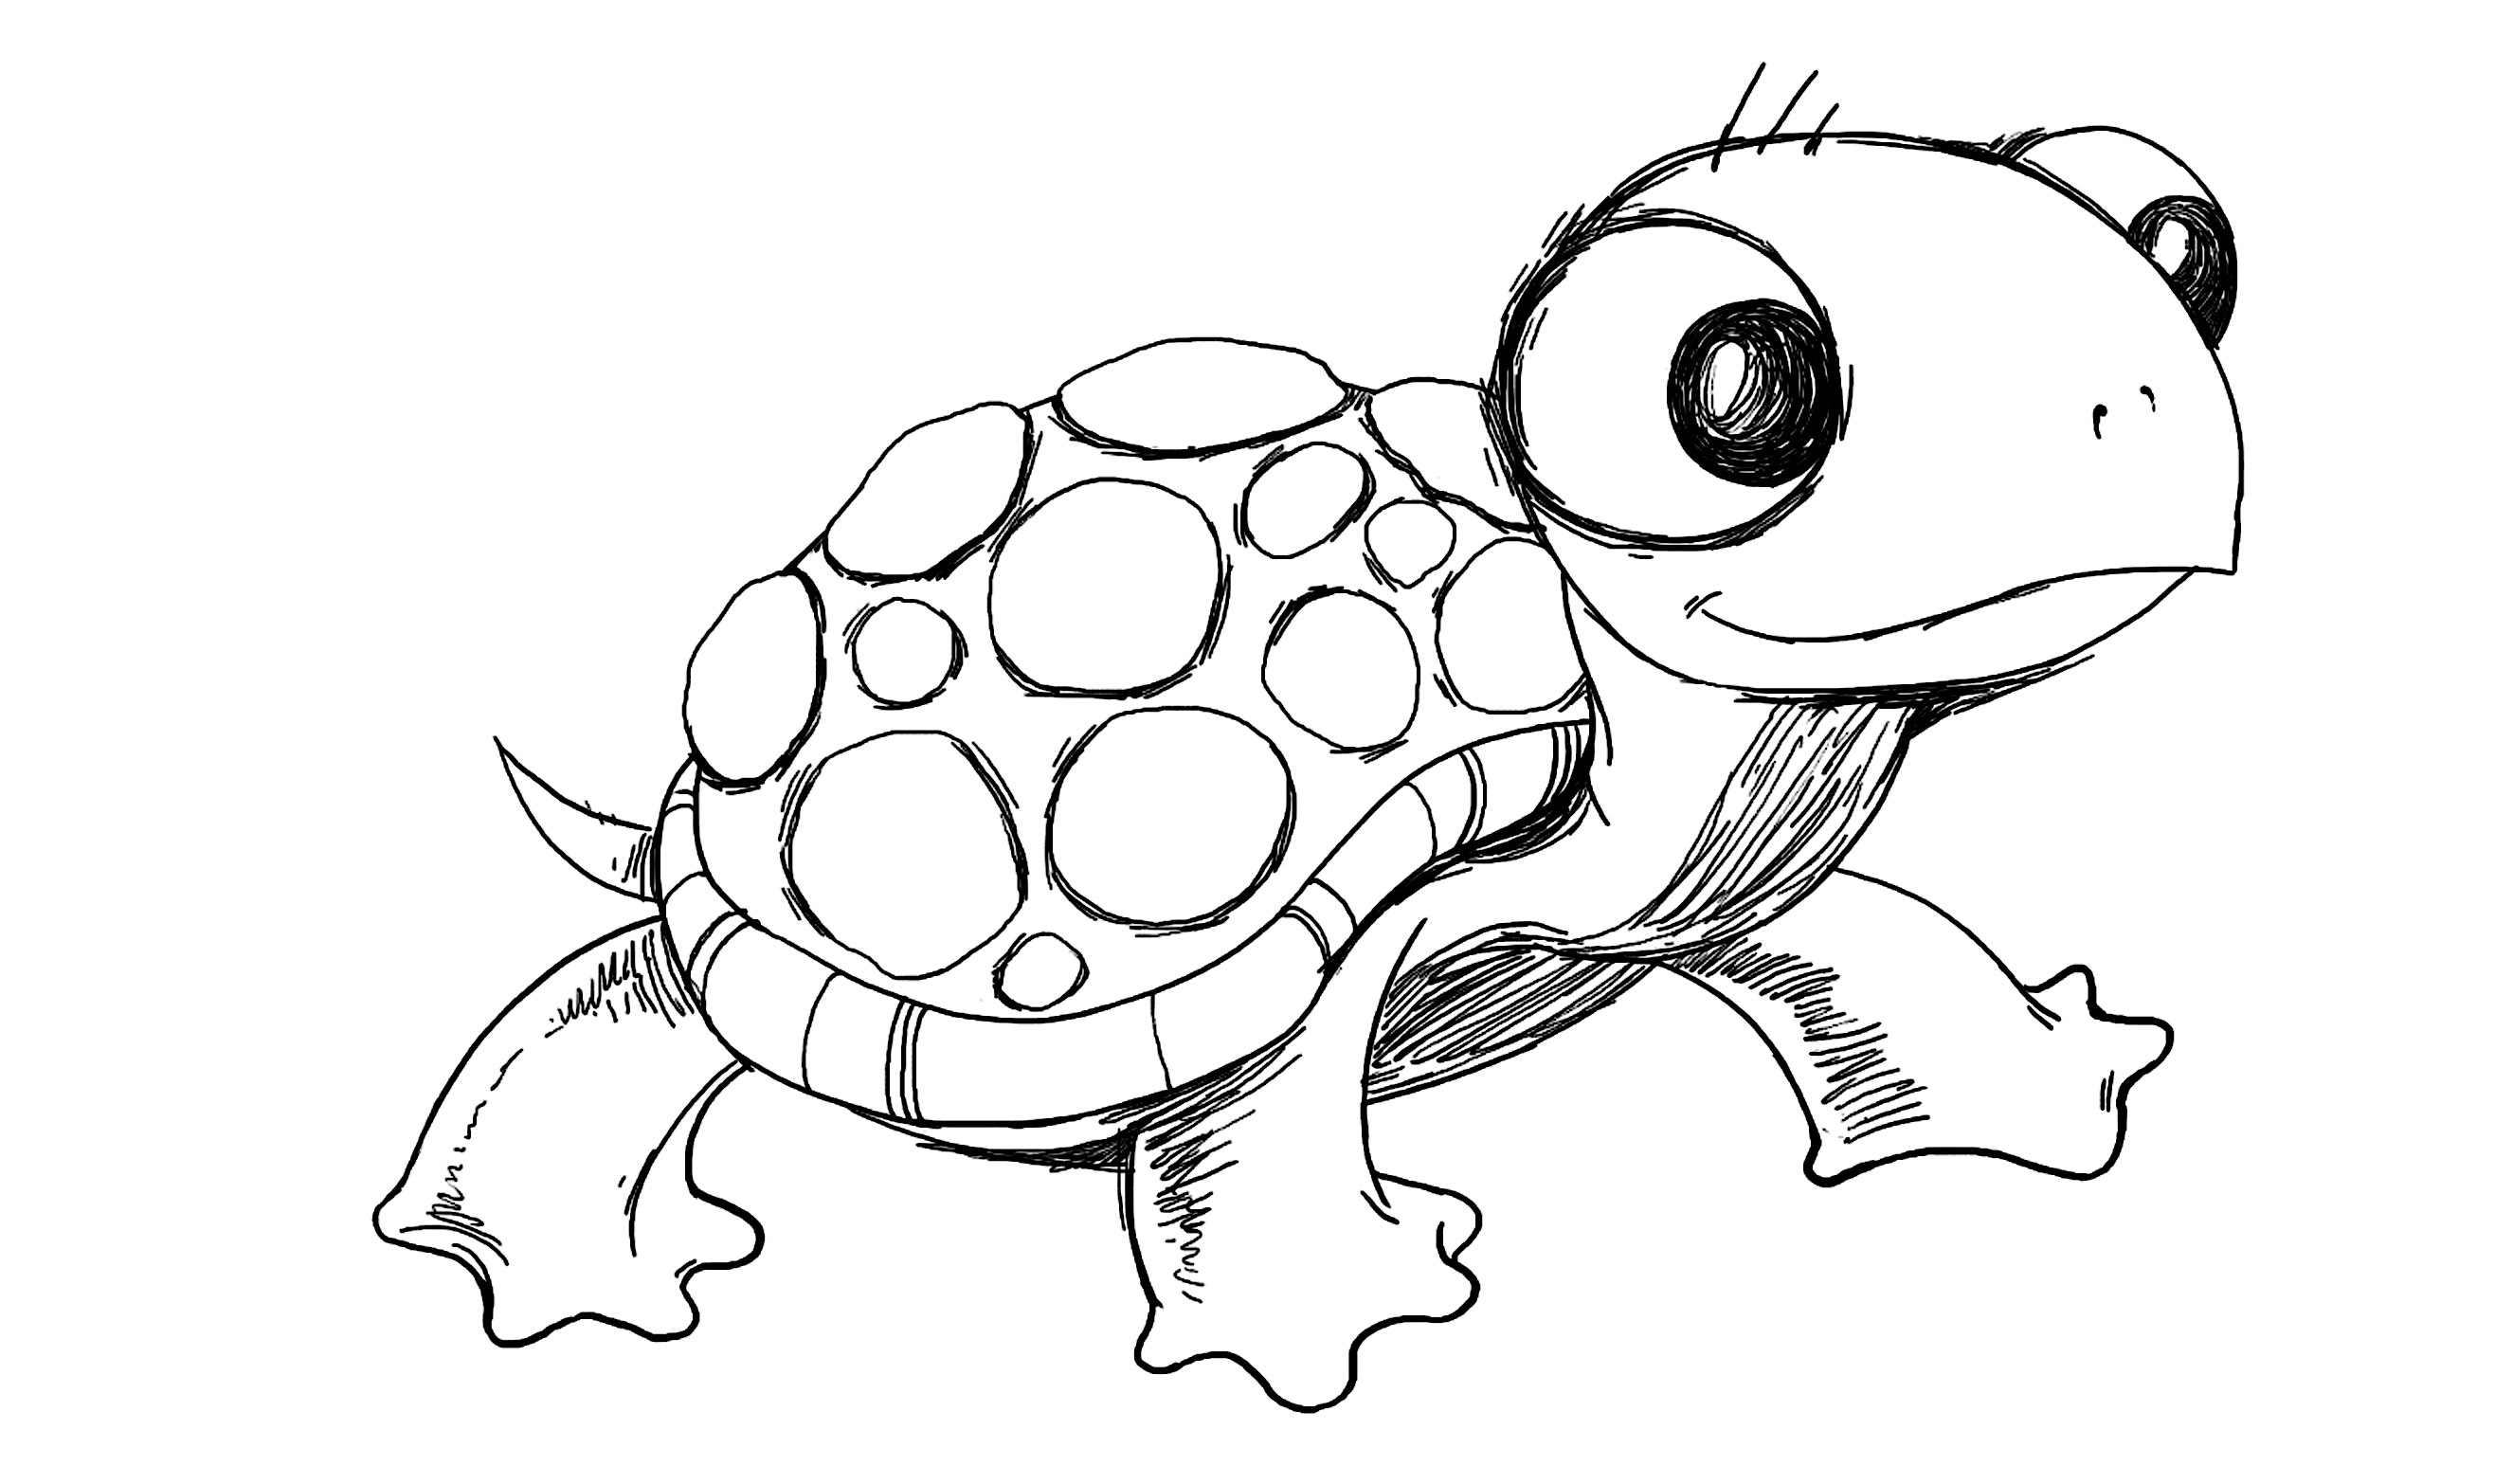 Turtle Drawing Pencil Sketch Colorful Realistic Art